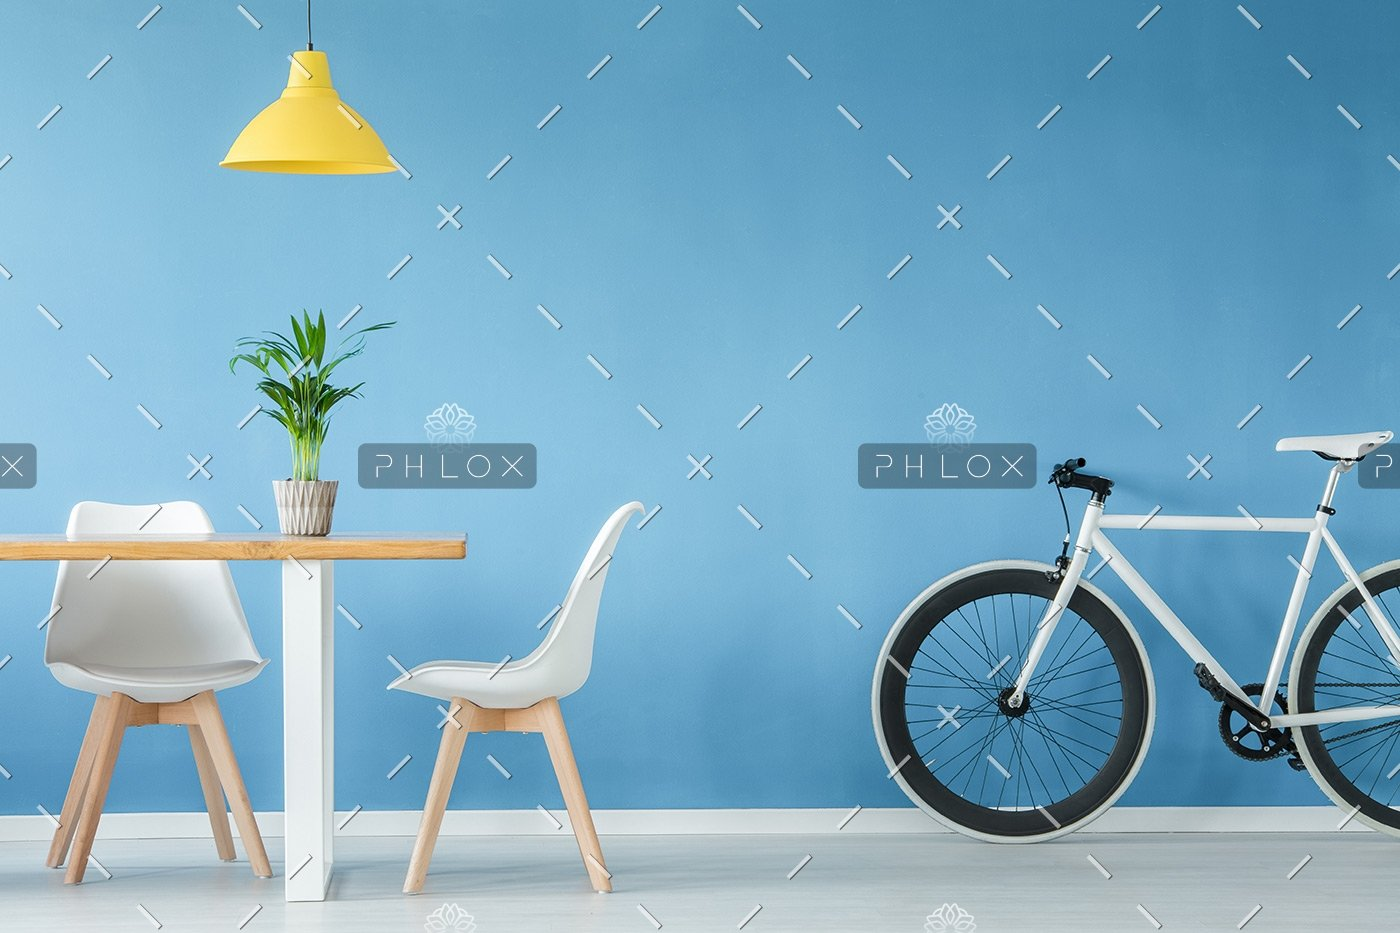 demo-attachment-89-minimal-interior-with-furniture-P8X647W